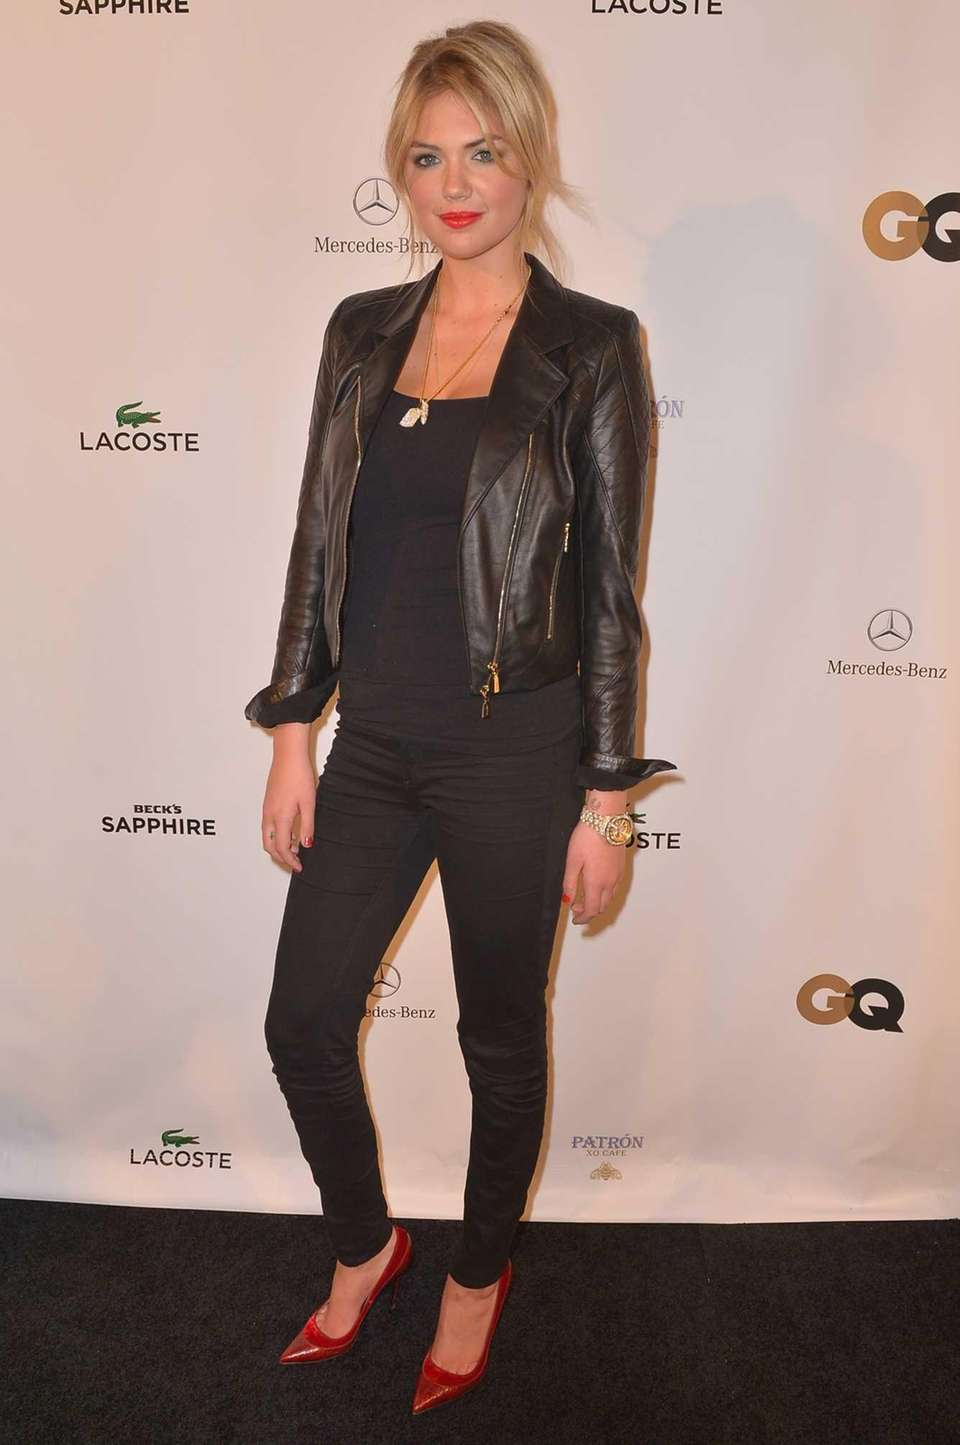 Kate Upton attends the Lacoste/GQ Super Bowl Party